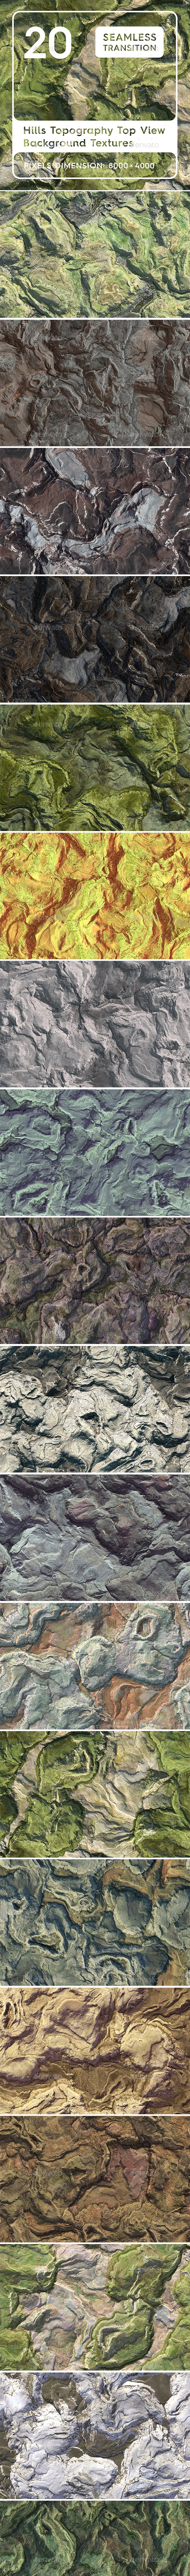 20 Hills Topography Top View Background Textures - 3DOcean Item for Sale